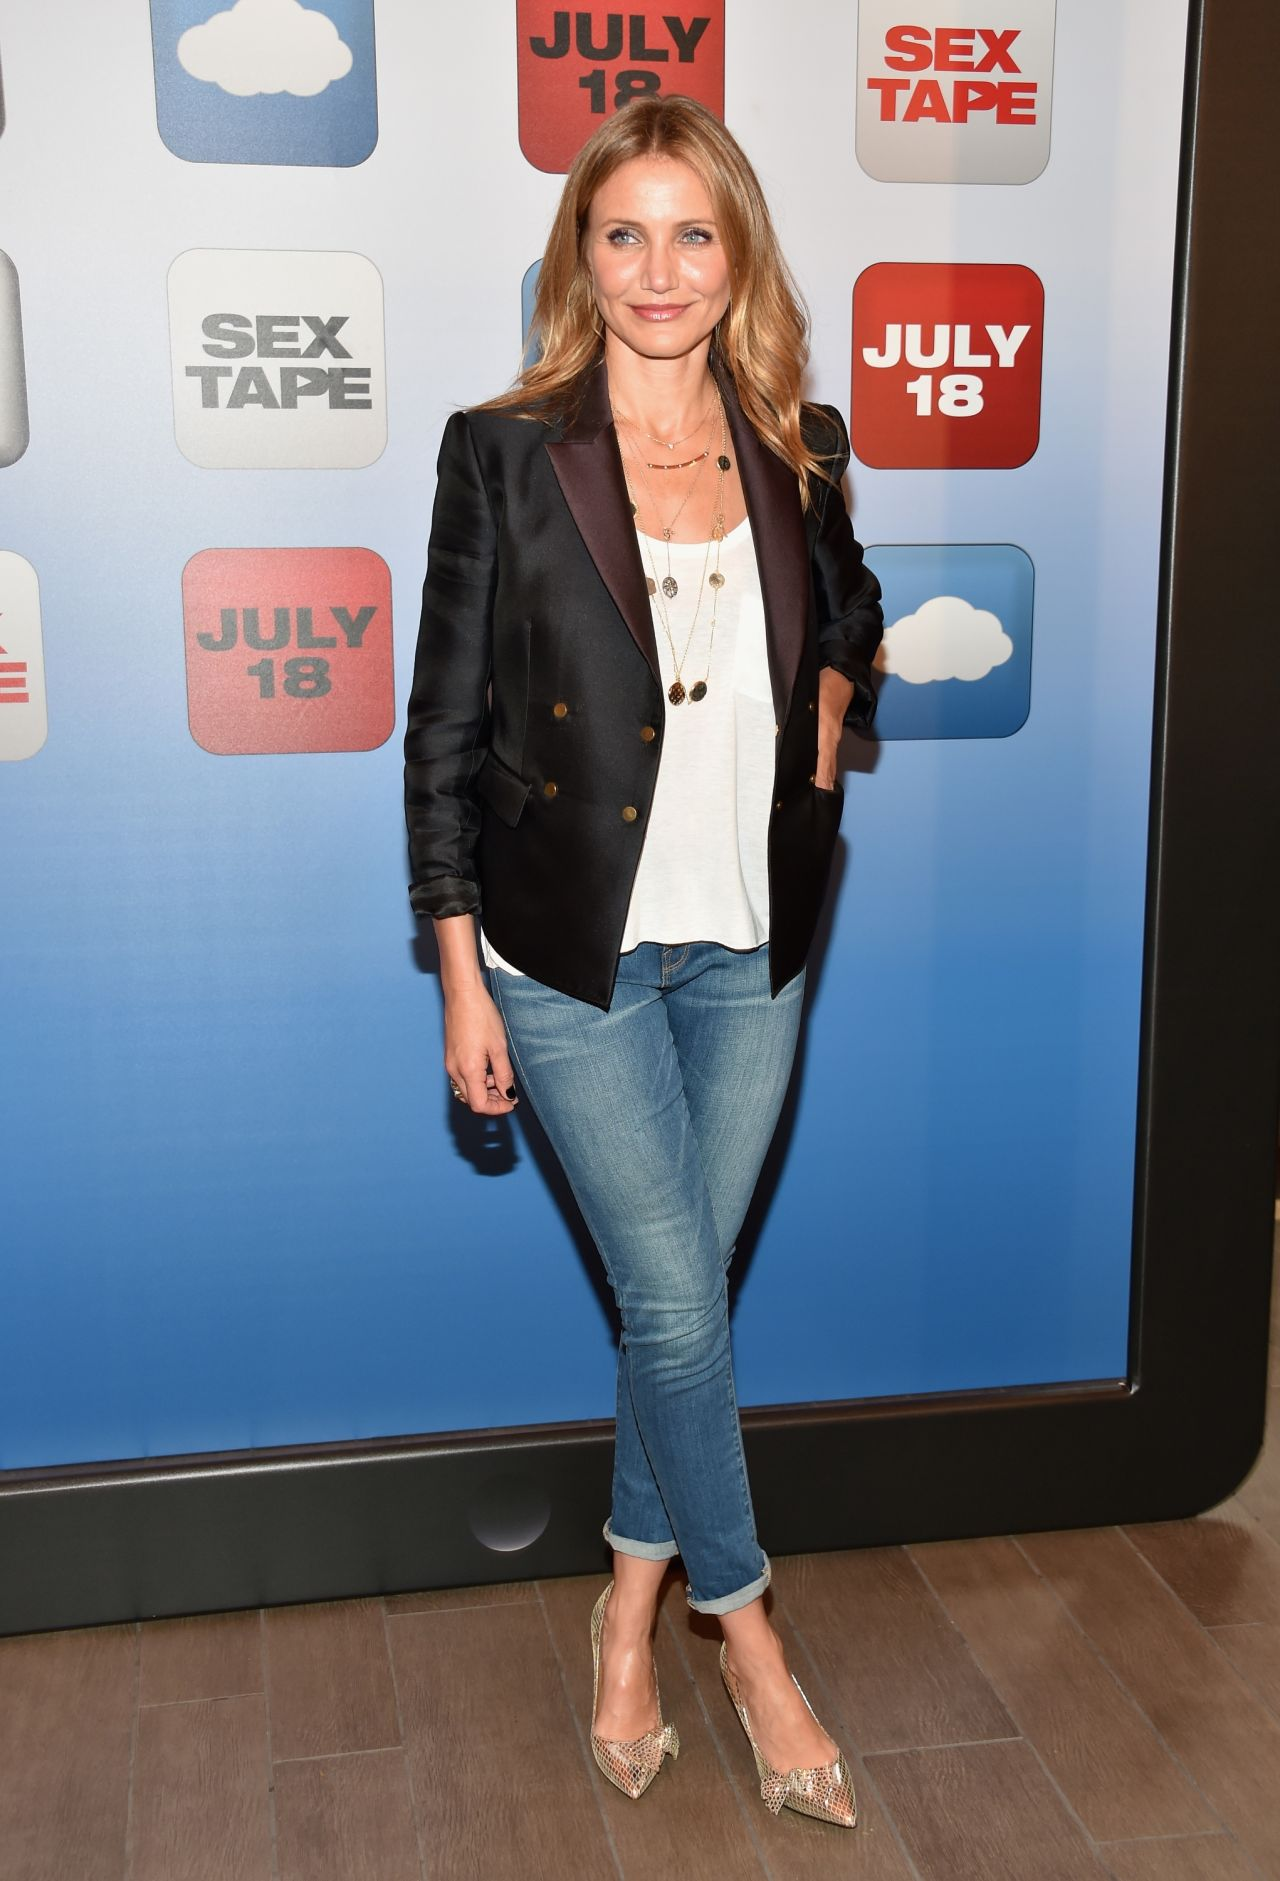 Cameron Diaz  Sex Tape Movie Photocall In Los Angeles-1670